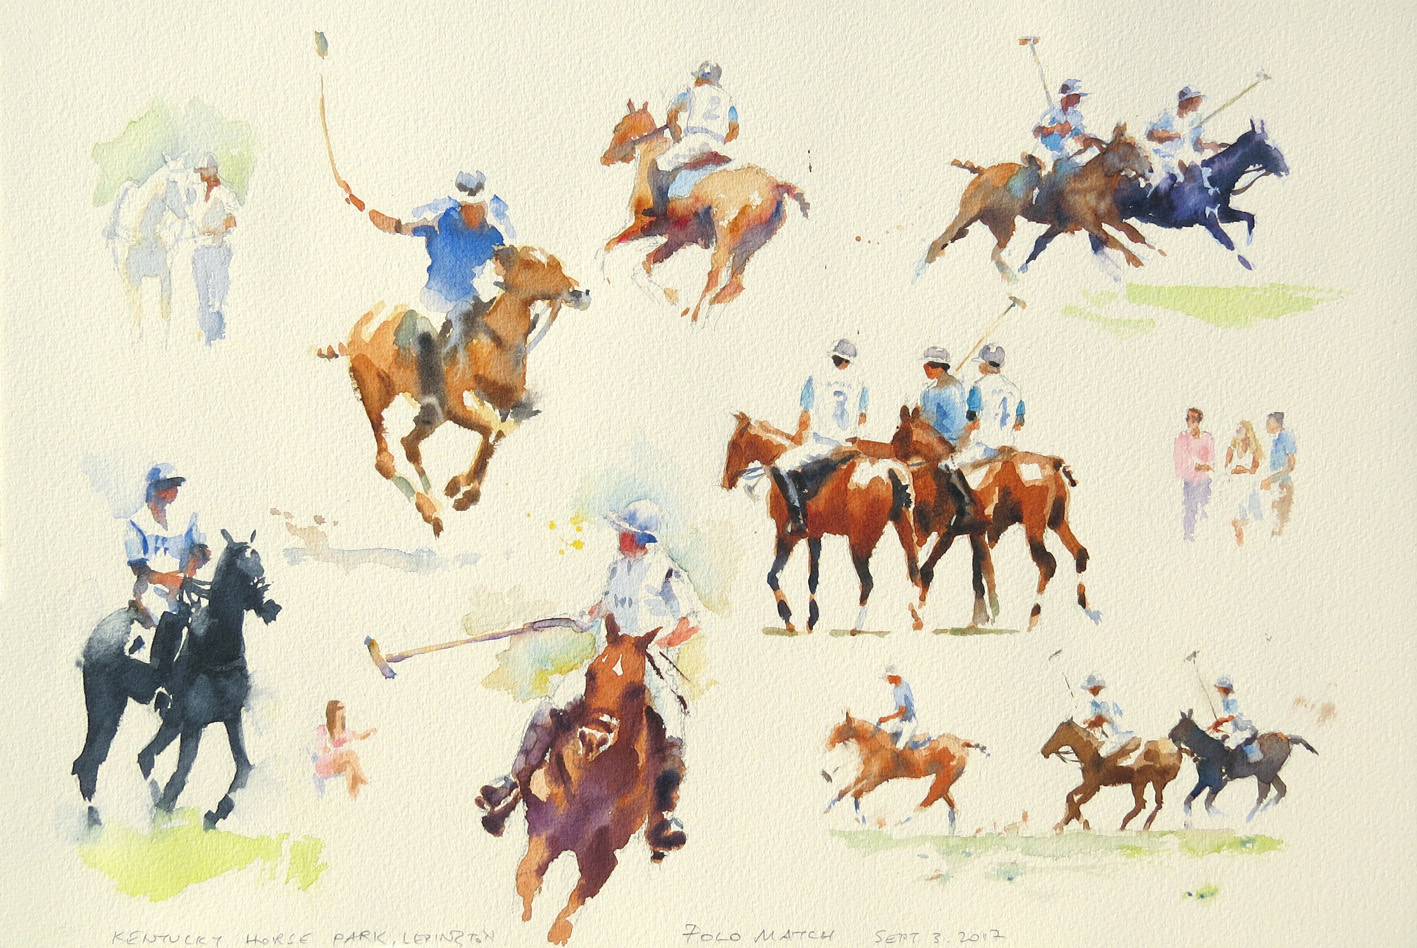 Sketches at a polo match, Kentucky Horse Park